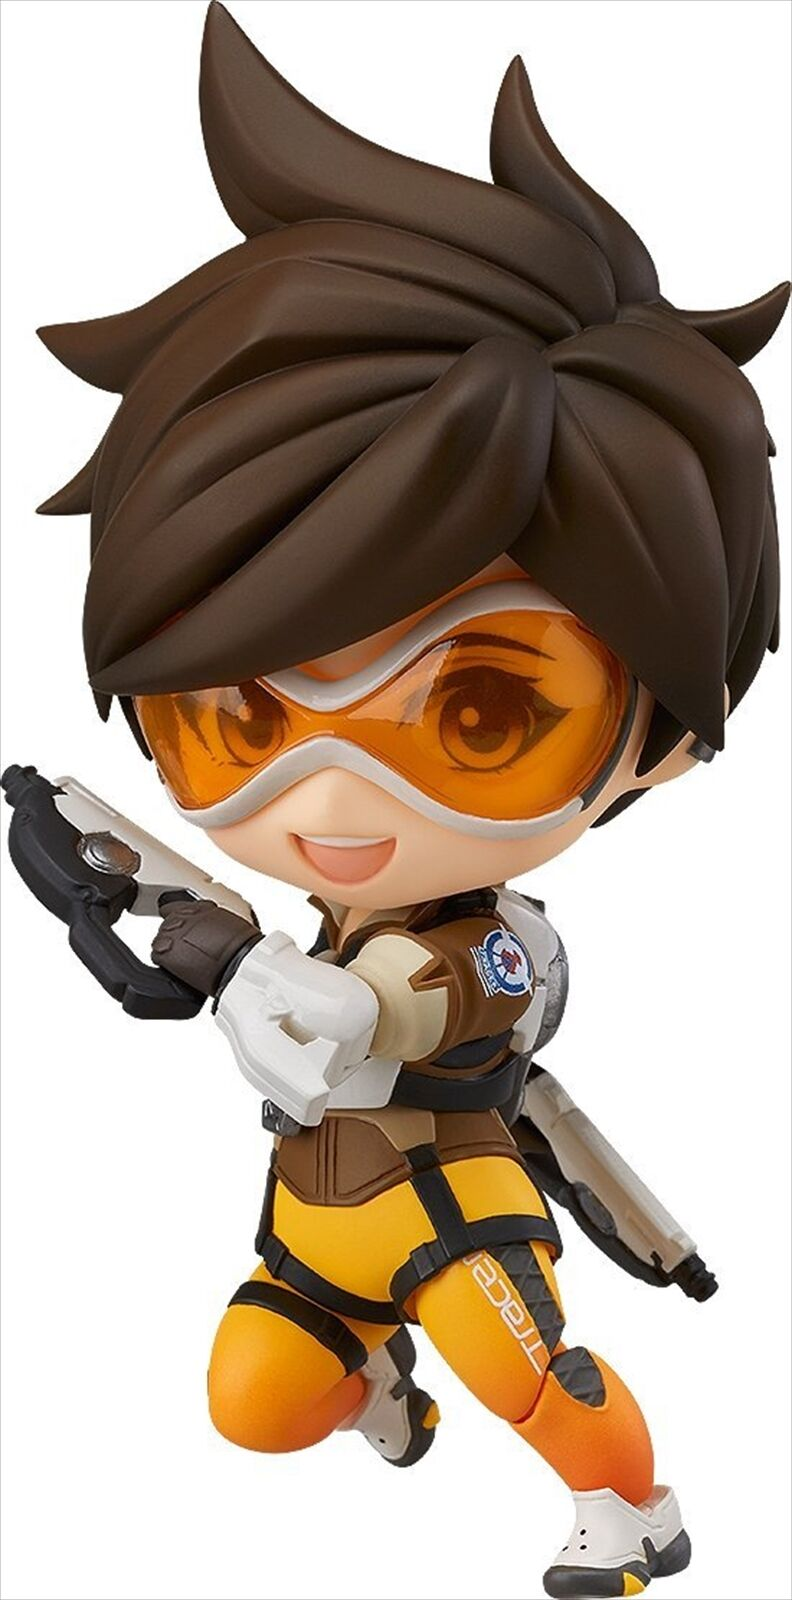 Good Smile Company Overwatch Tracer Classic Skin Edition Nendoroid Action Figure